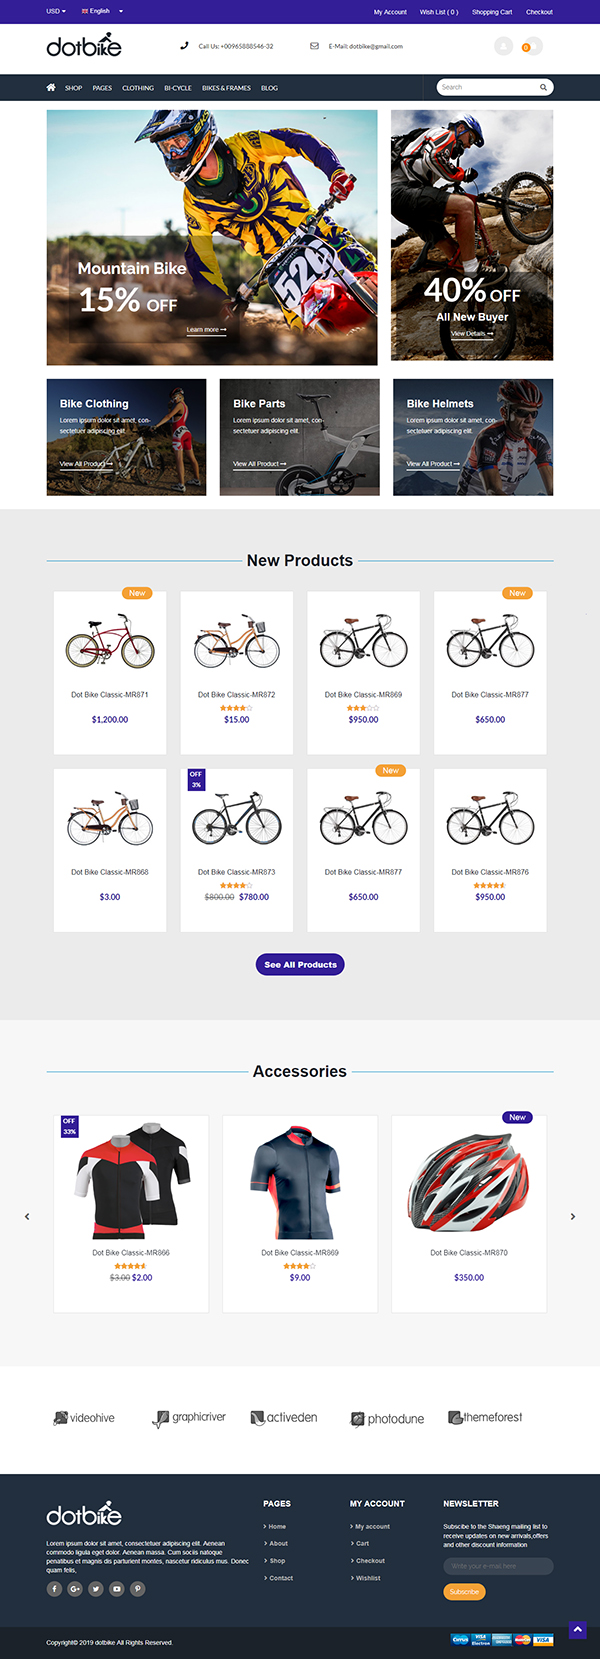 DotBike - eCommerce WordPress Theme